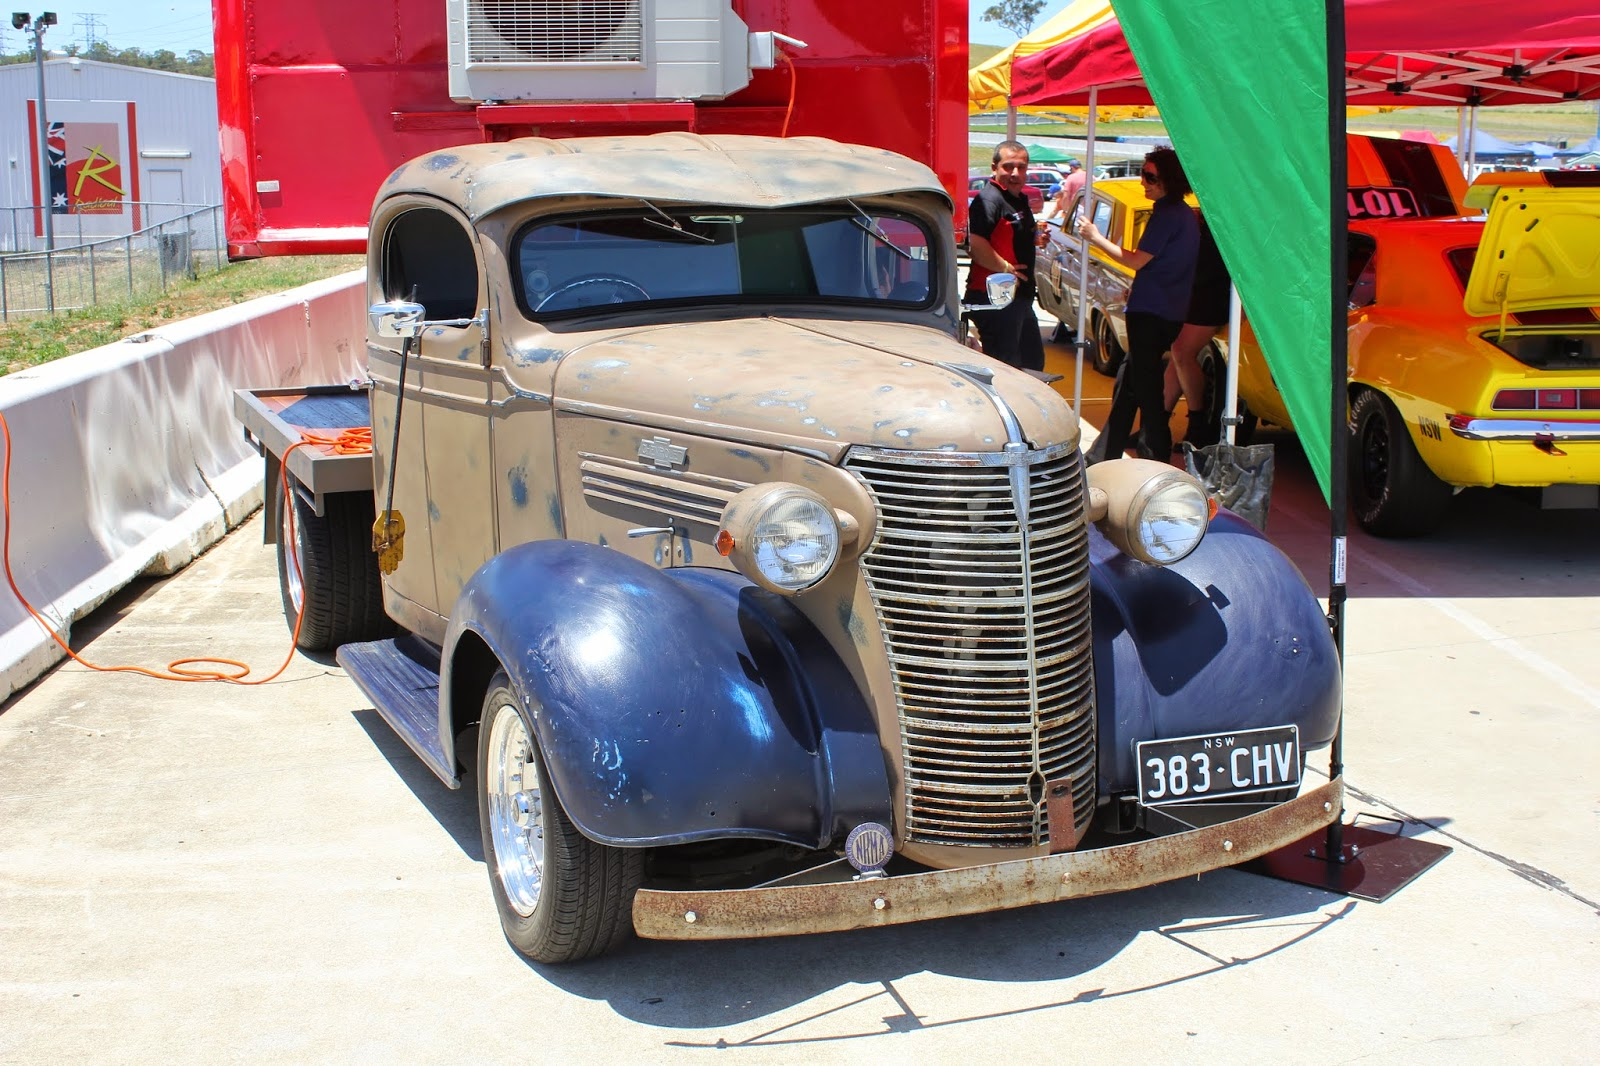 Aussie Old Parked Cars: 1937 Chevrolet Ute